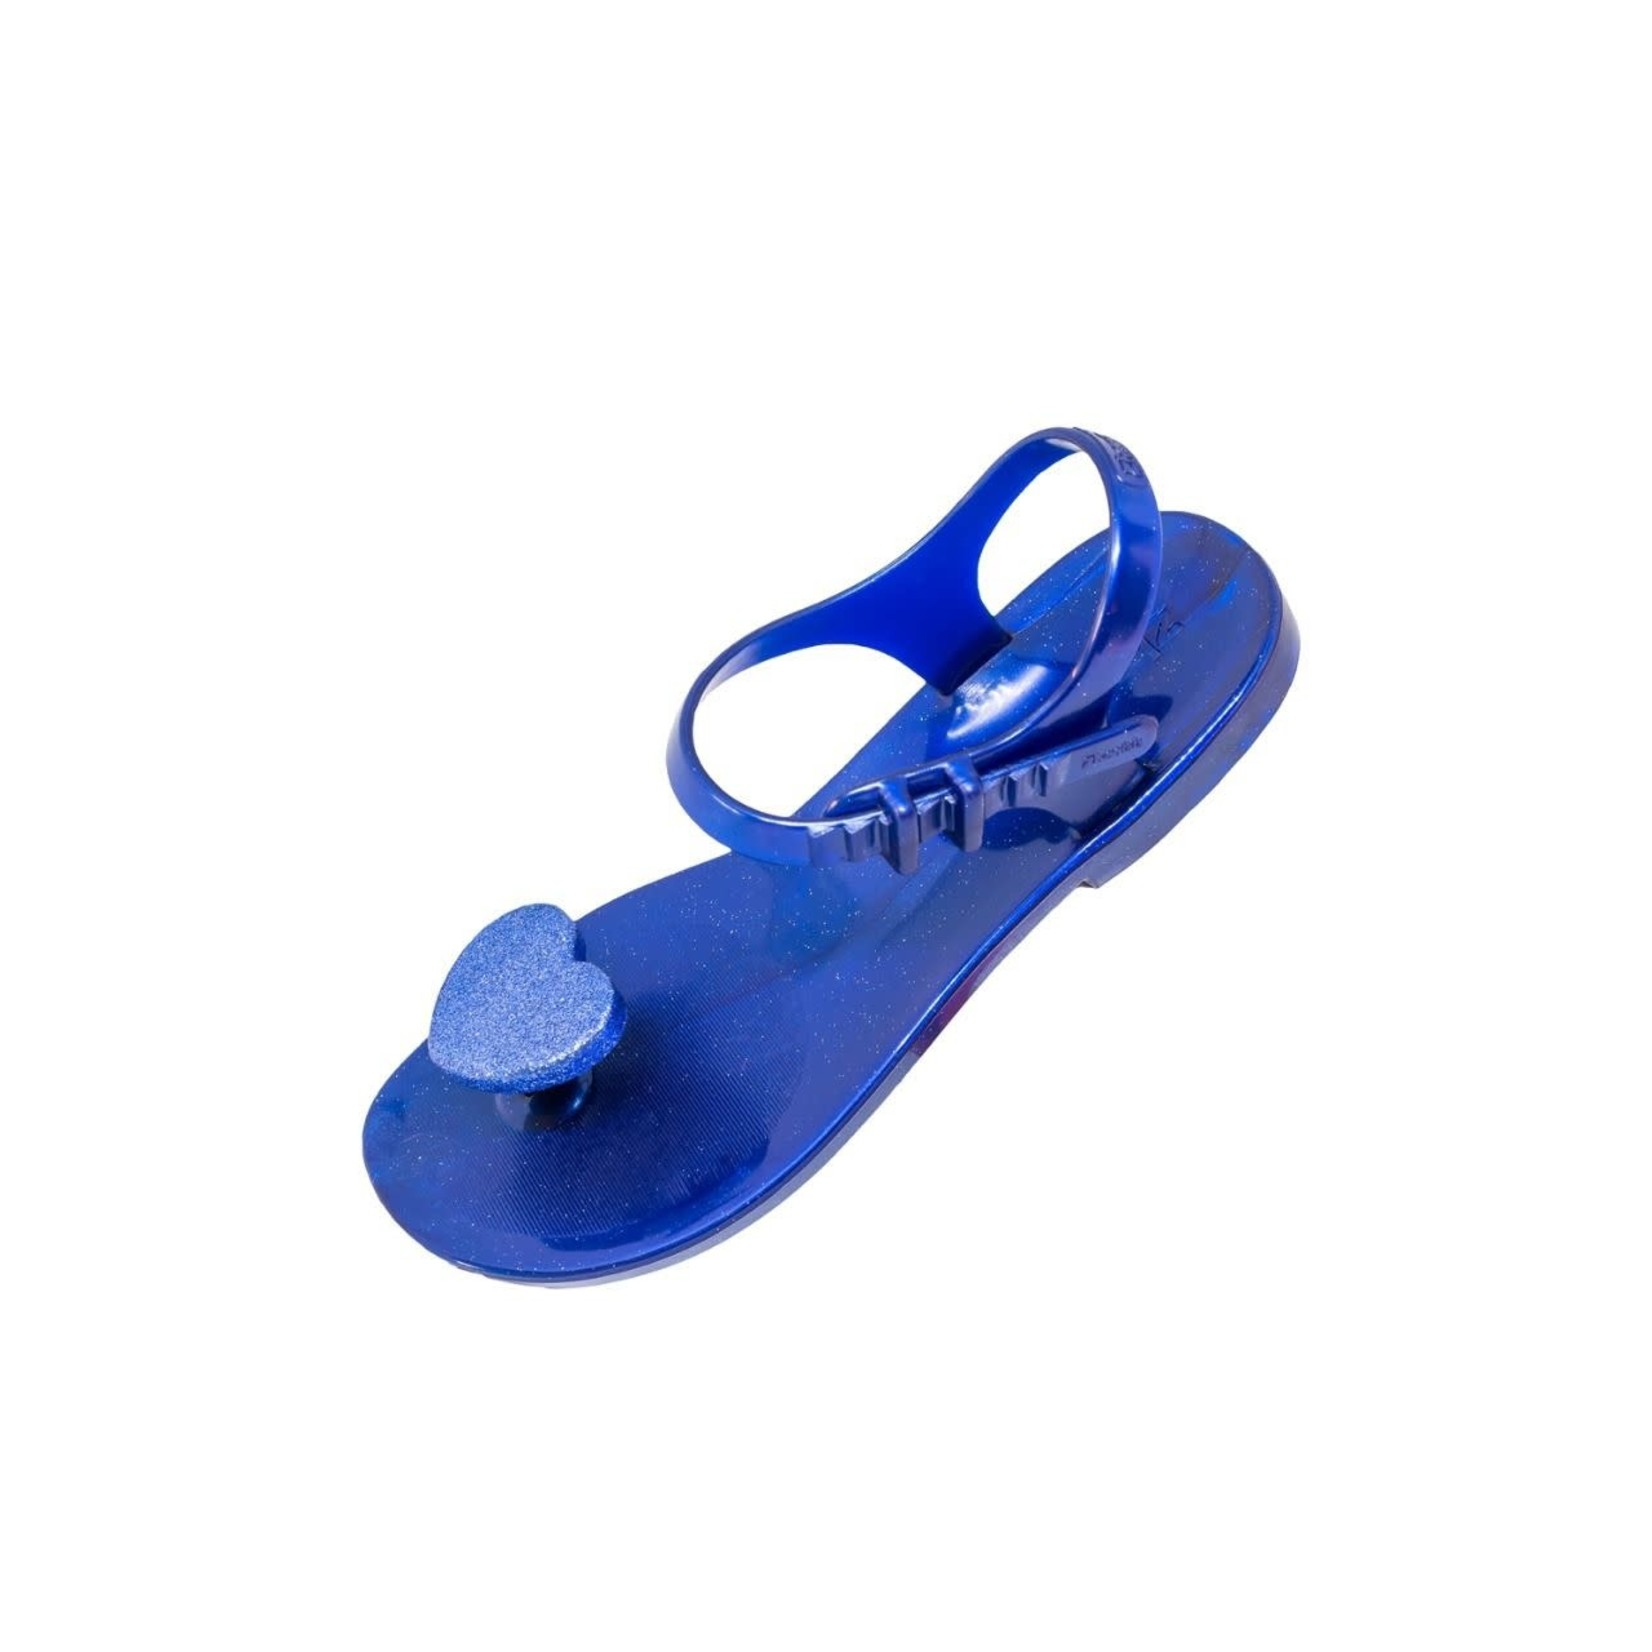 SHOELA MINI SHOELA SANDALE CORAZON - BLUE GLITTER